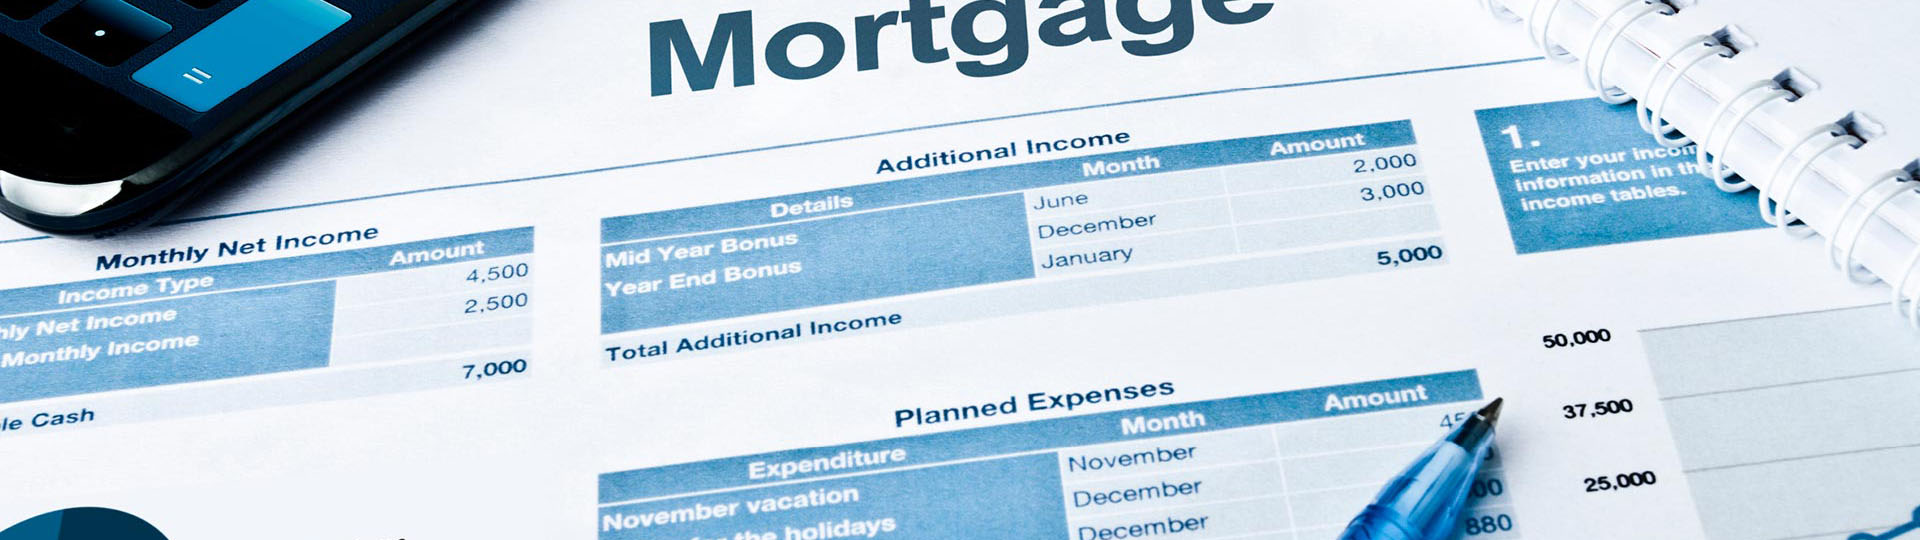 mortgage-loan-originator_1920